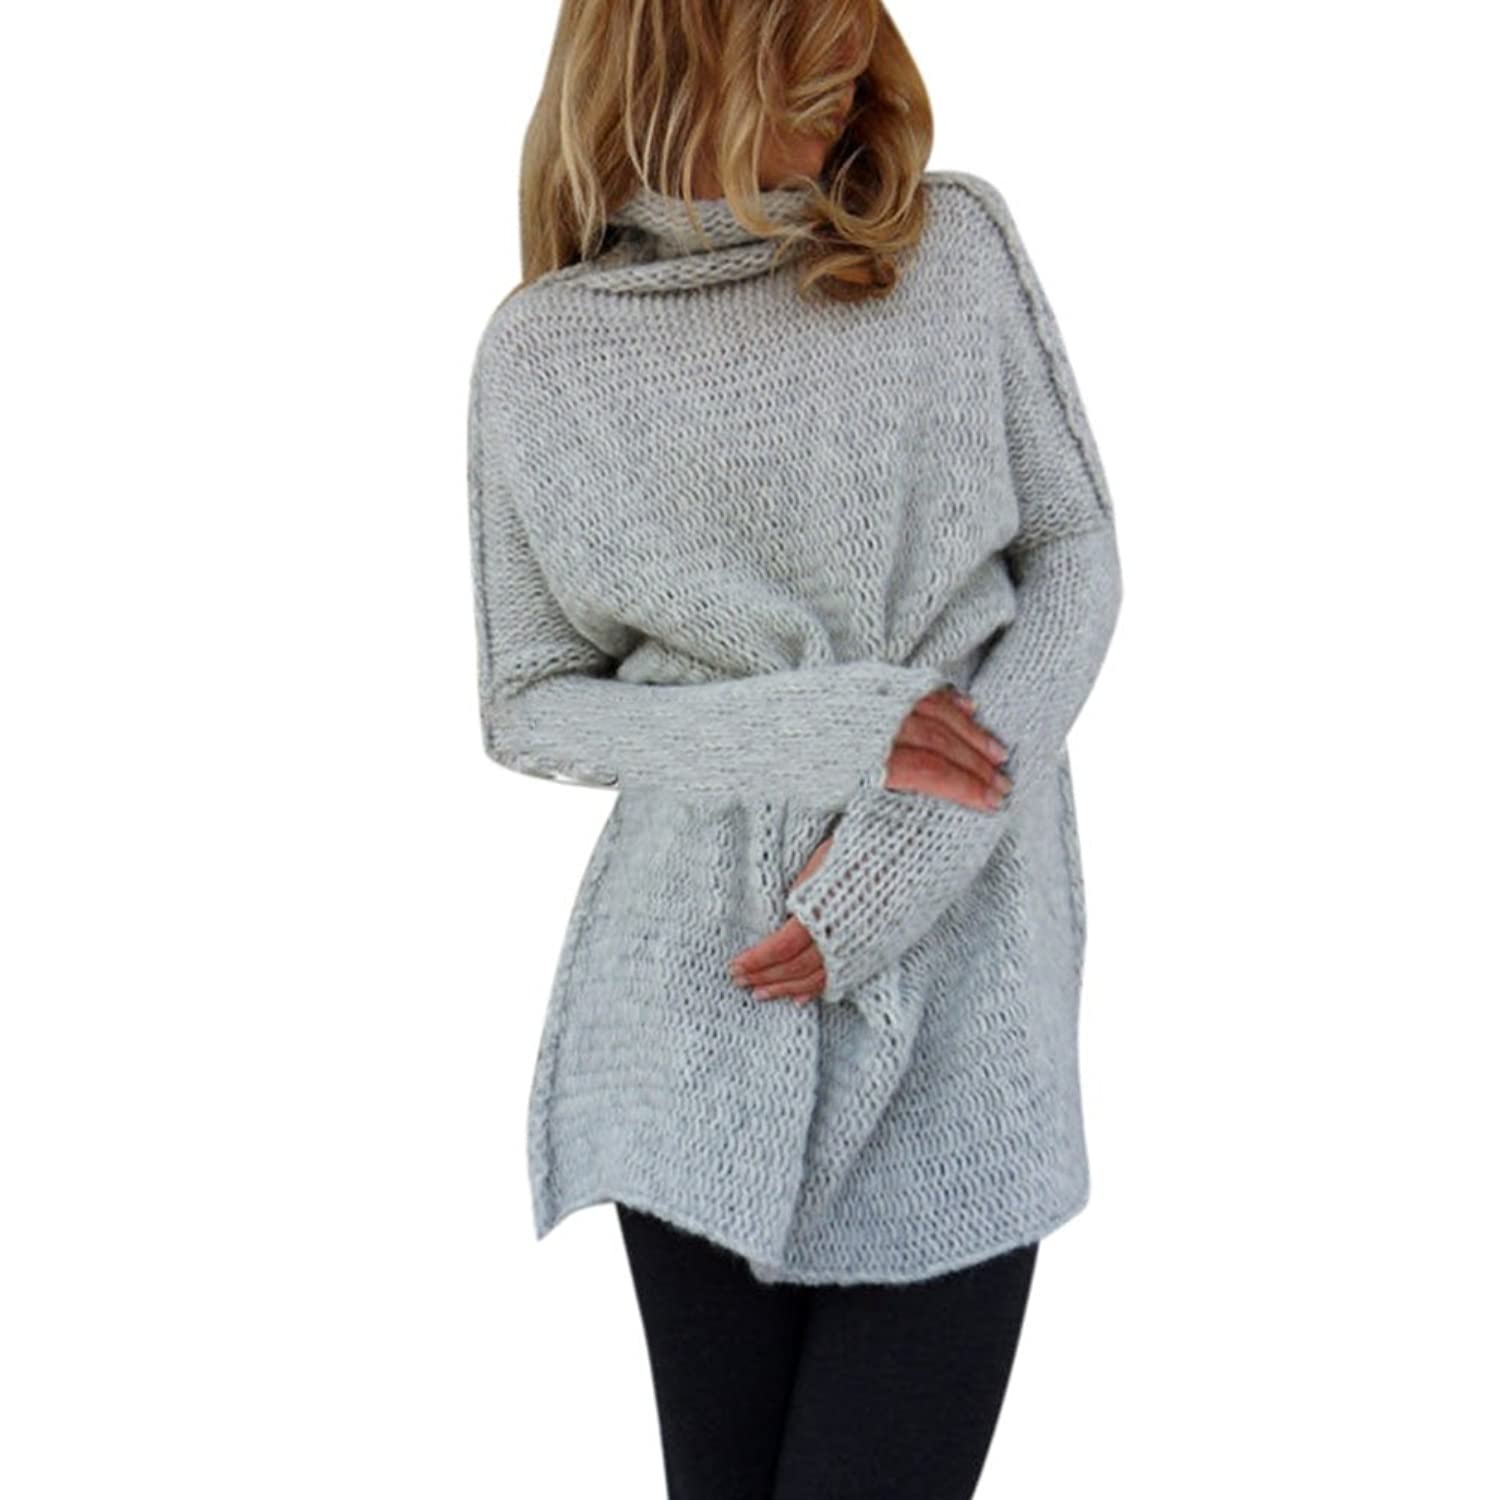 Colorfulworld Women's Fashion Sweater High-Necked Long-Sleeved Knitted Pullover Jumper Knitwear